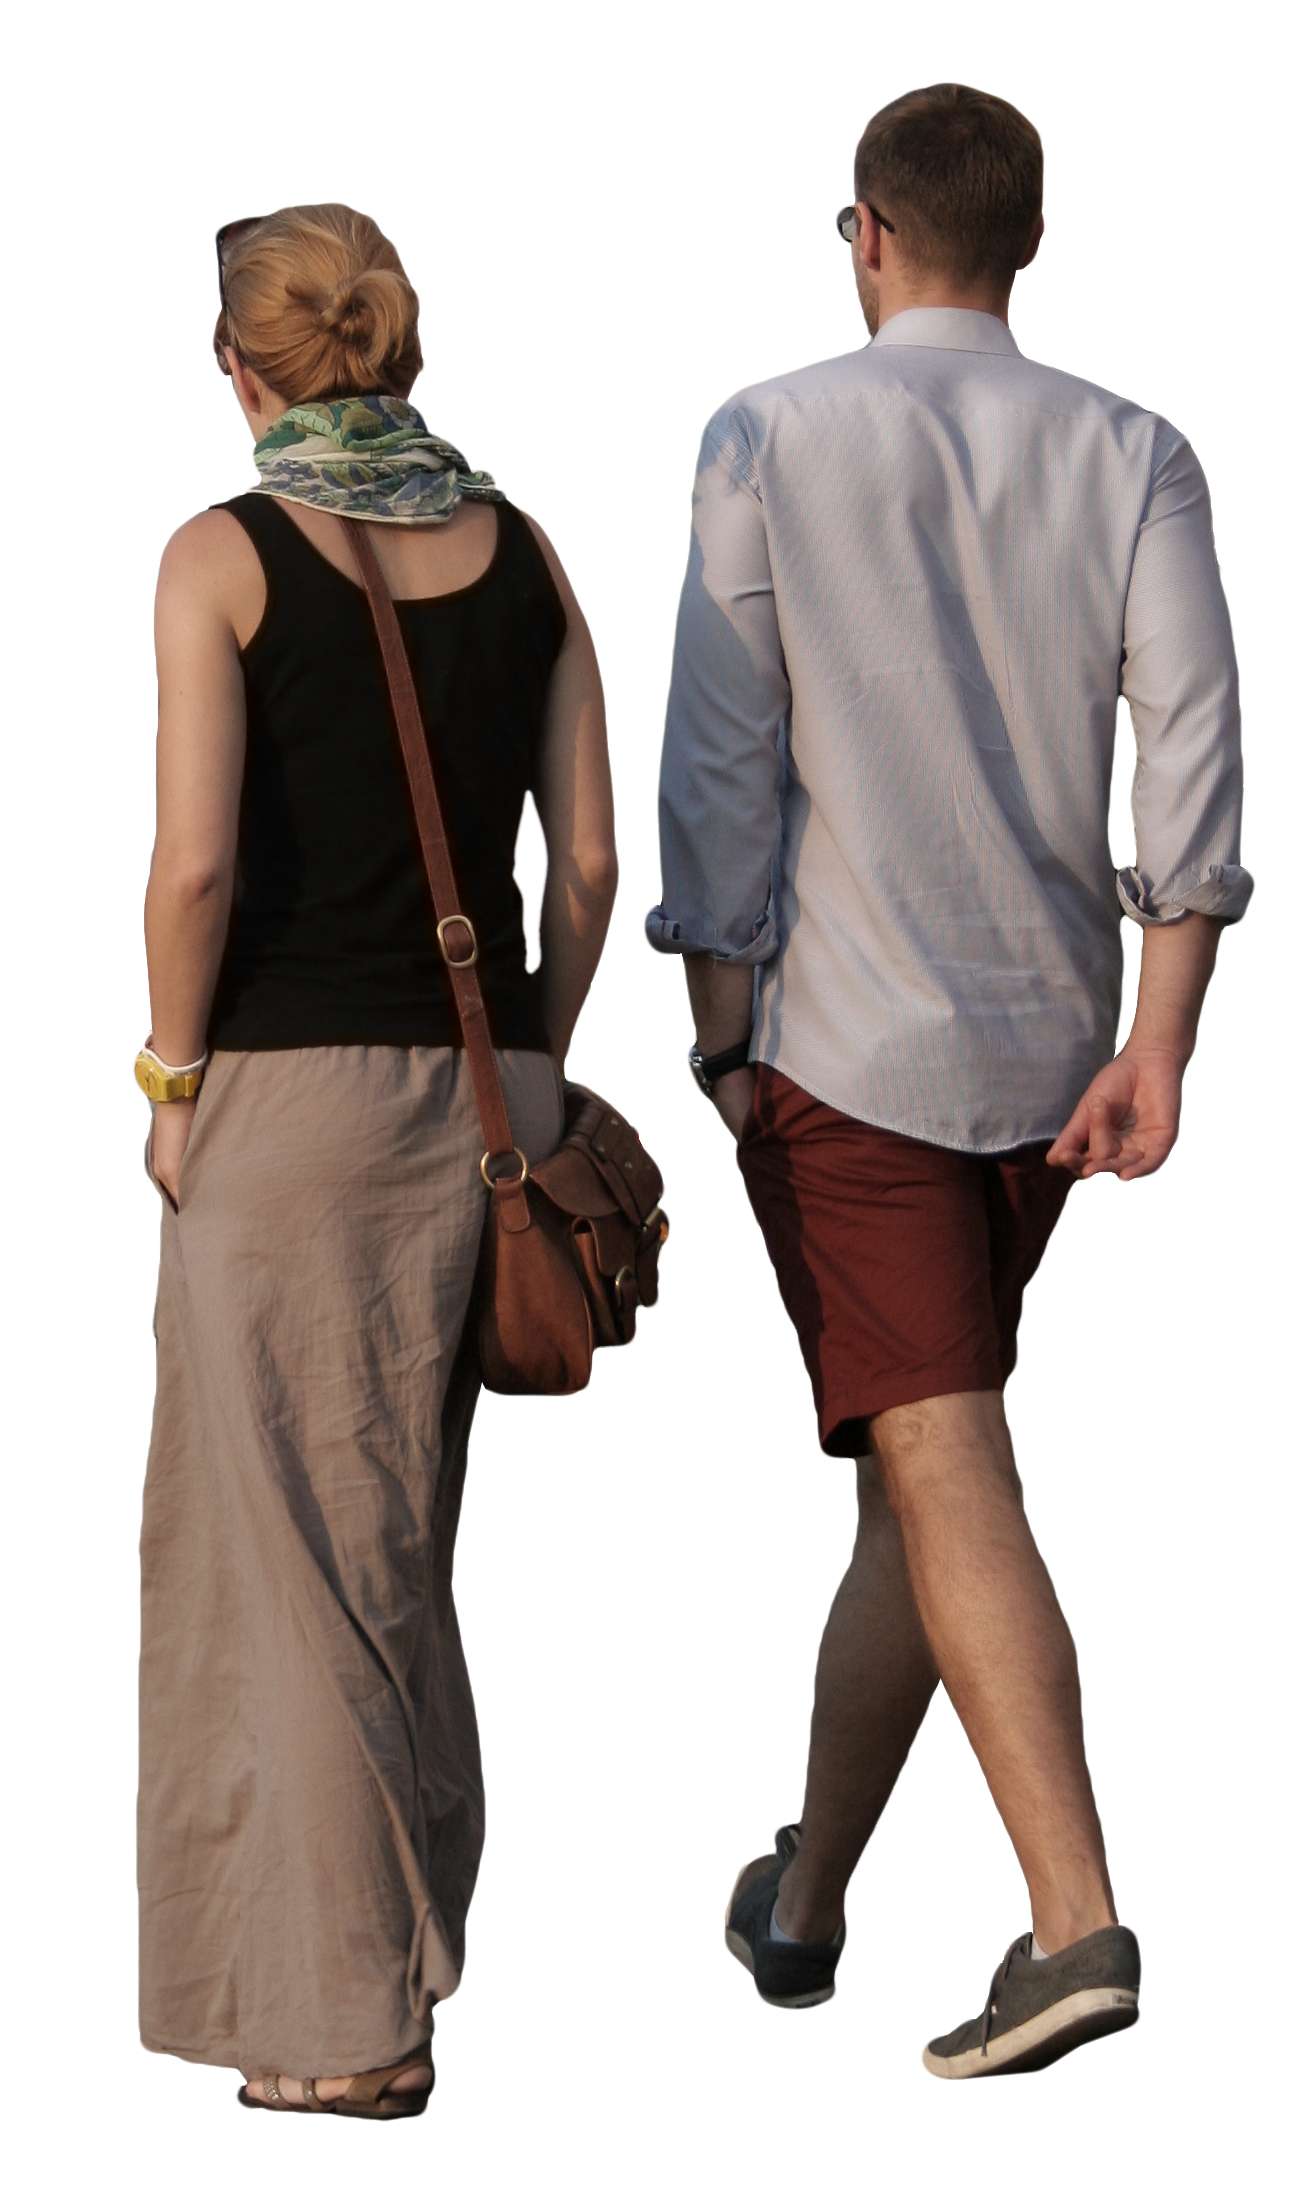 Couple walking png. Free cut out people